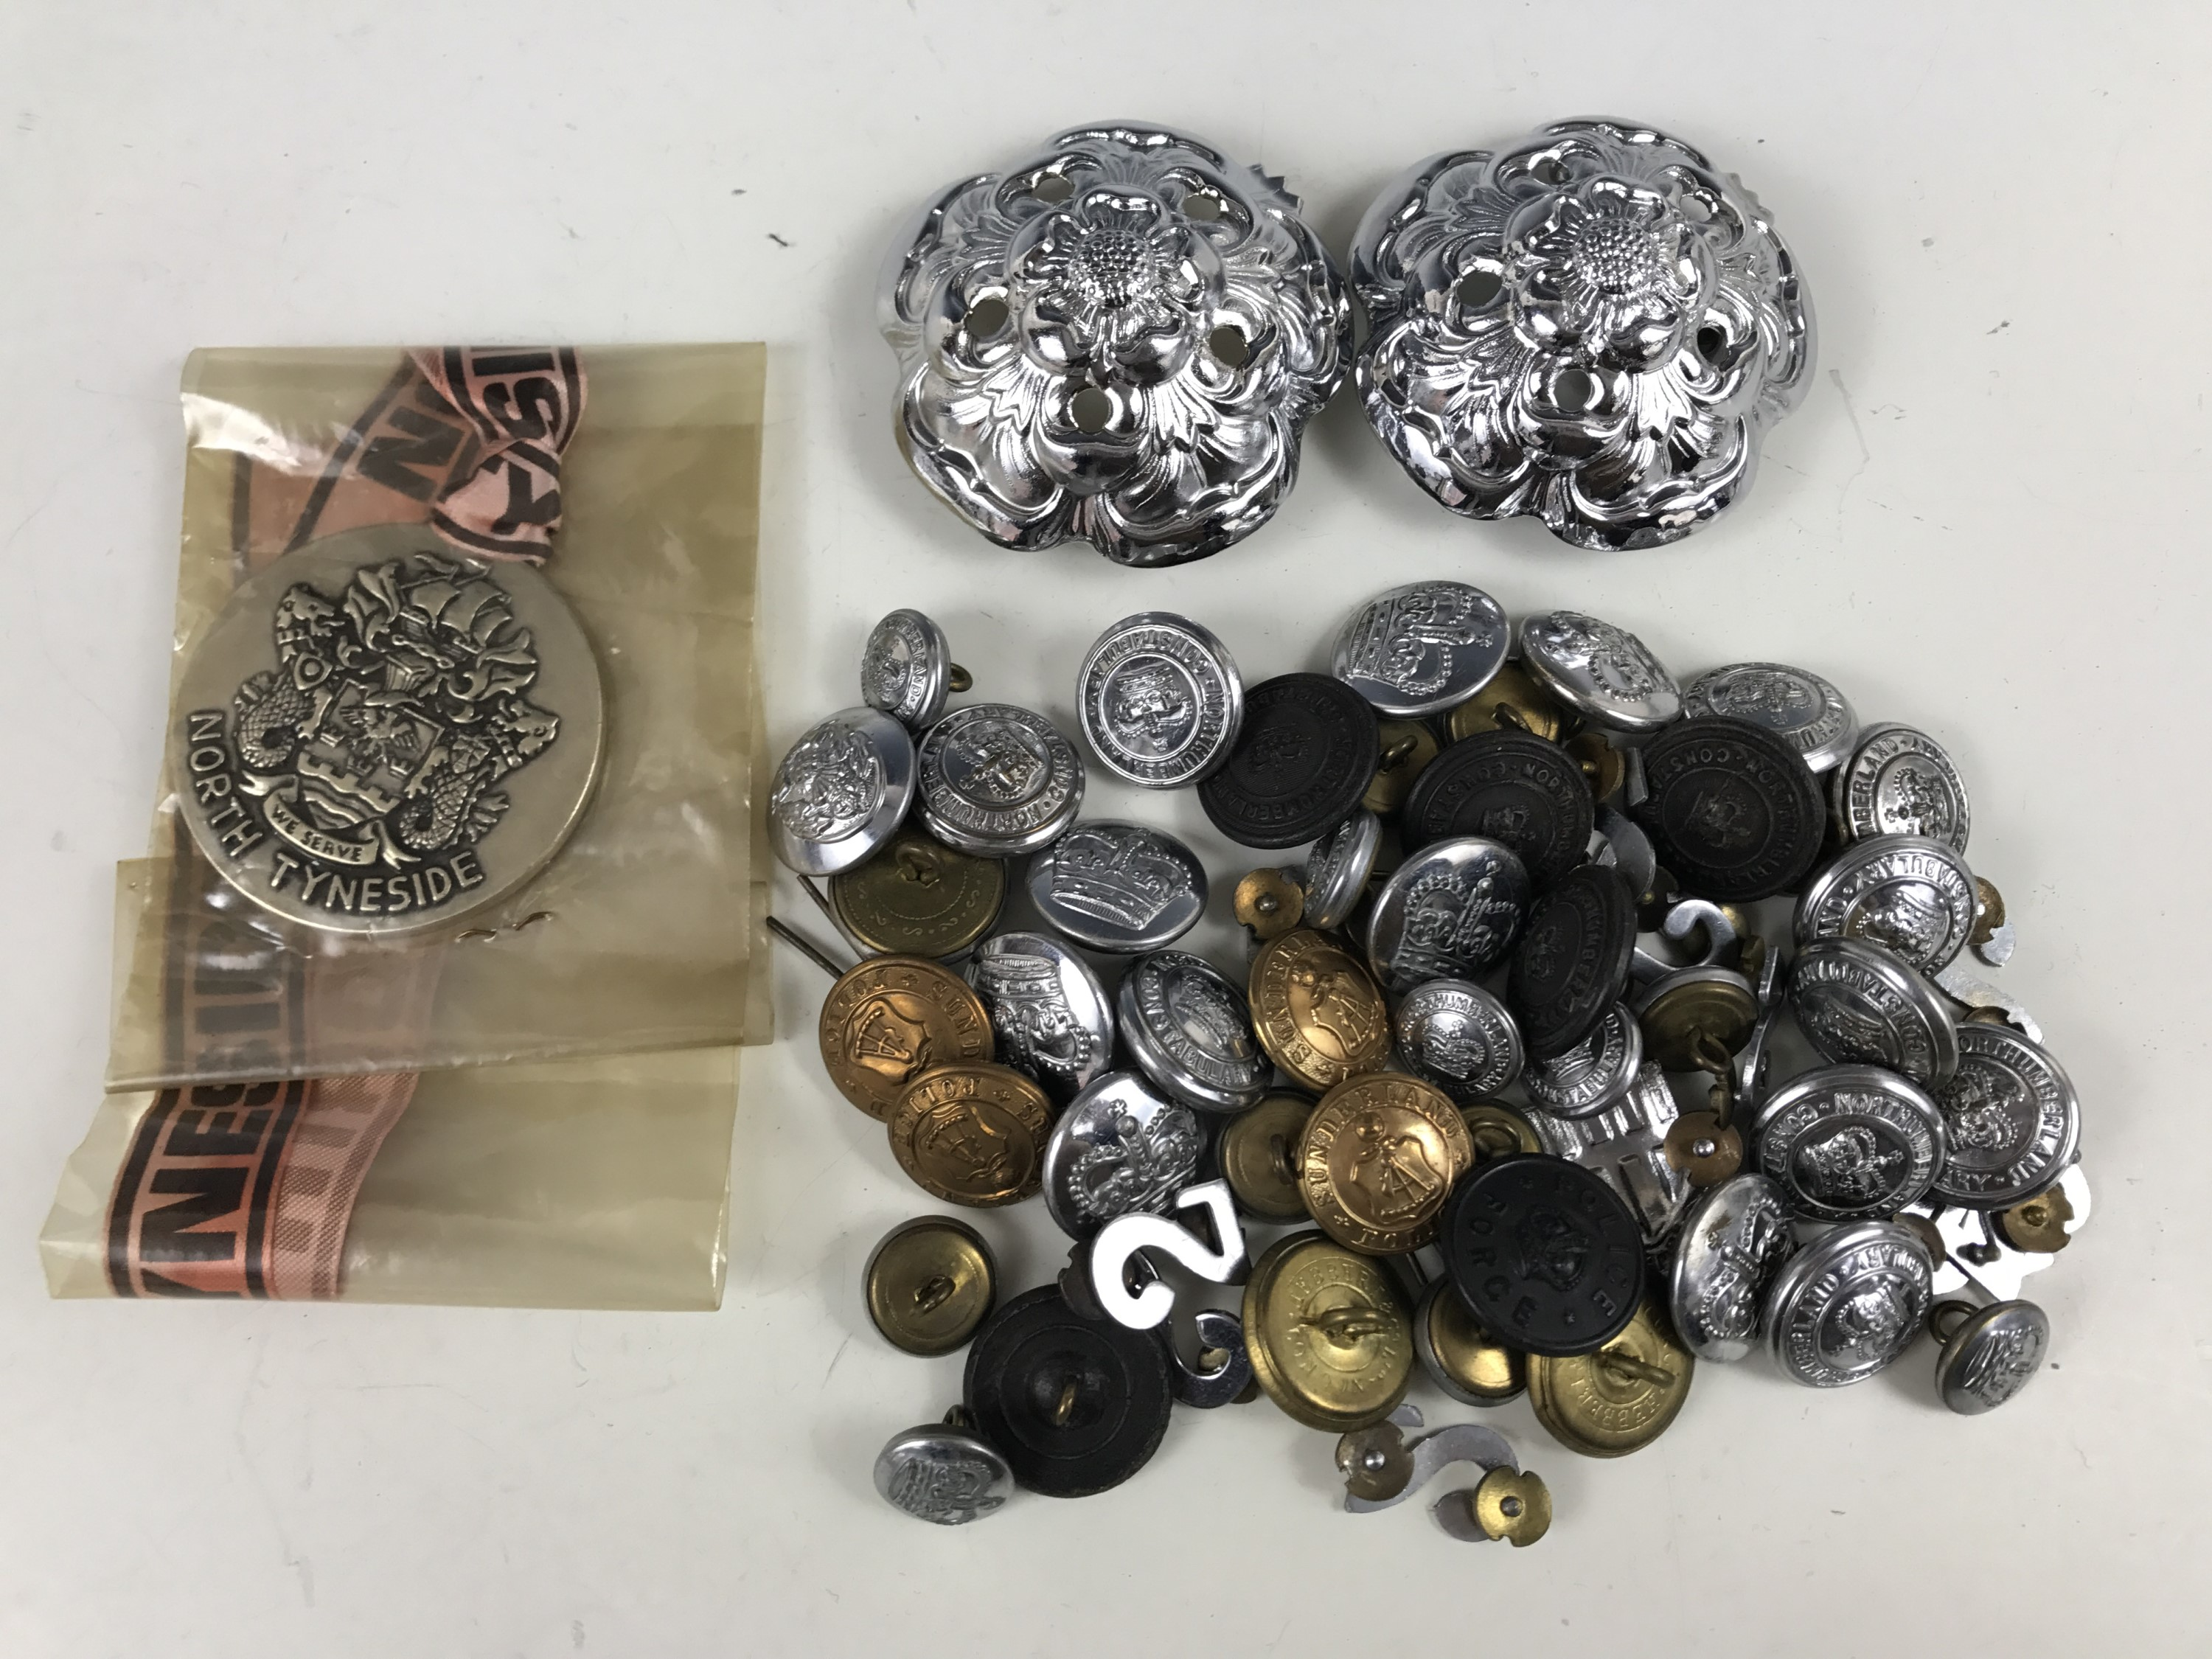 Lot 42 - A quantity of police insignia, buttons etc